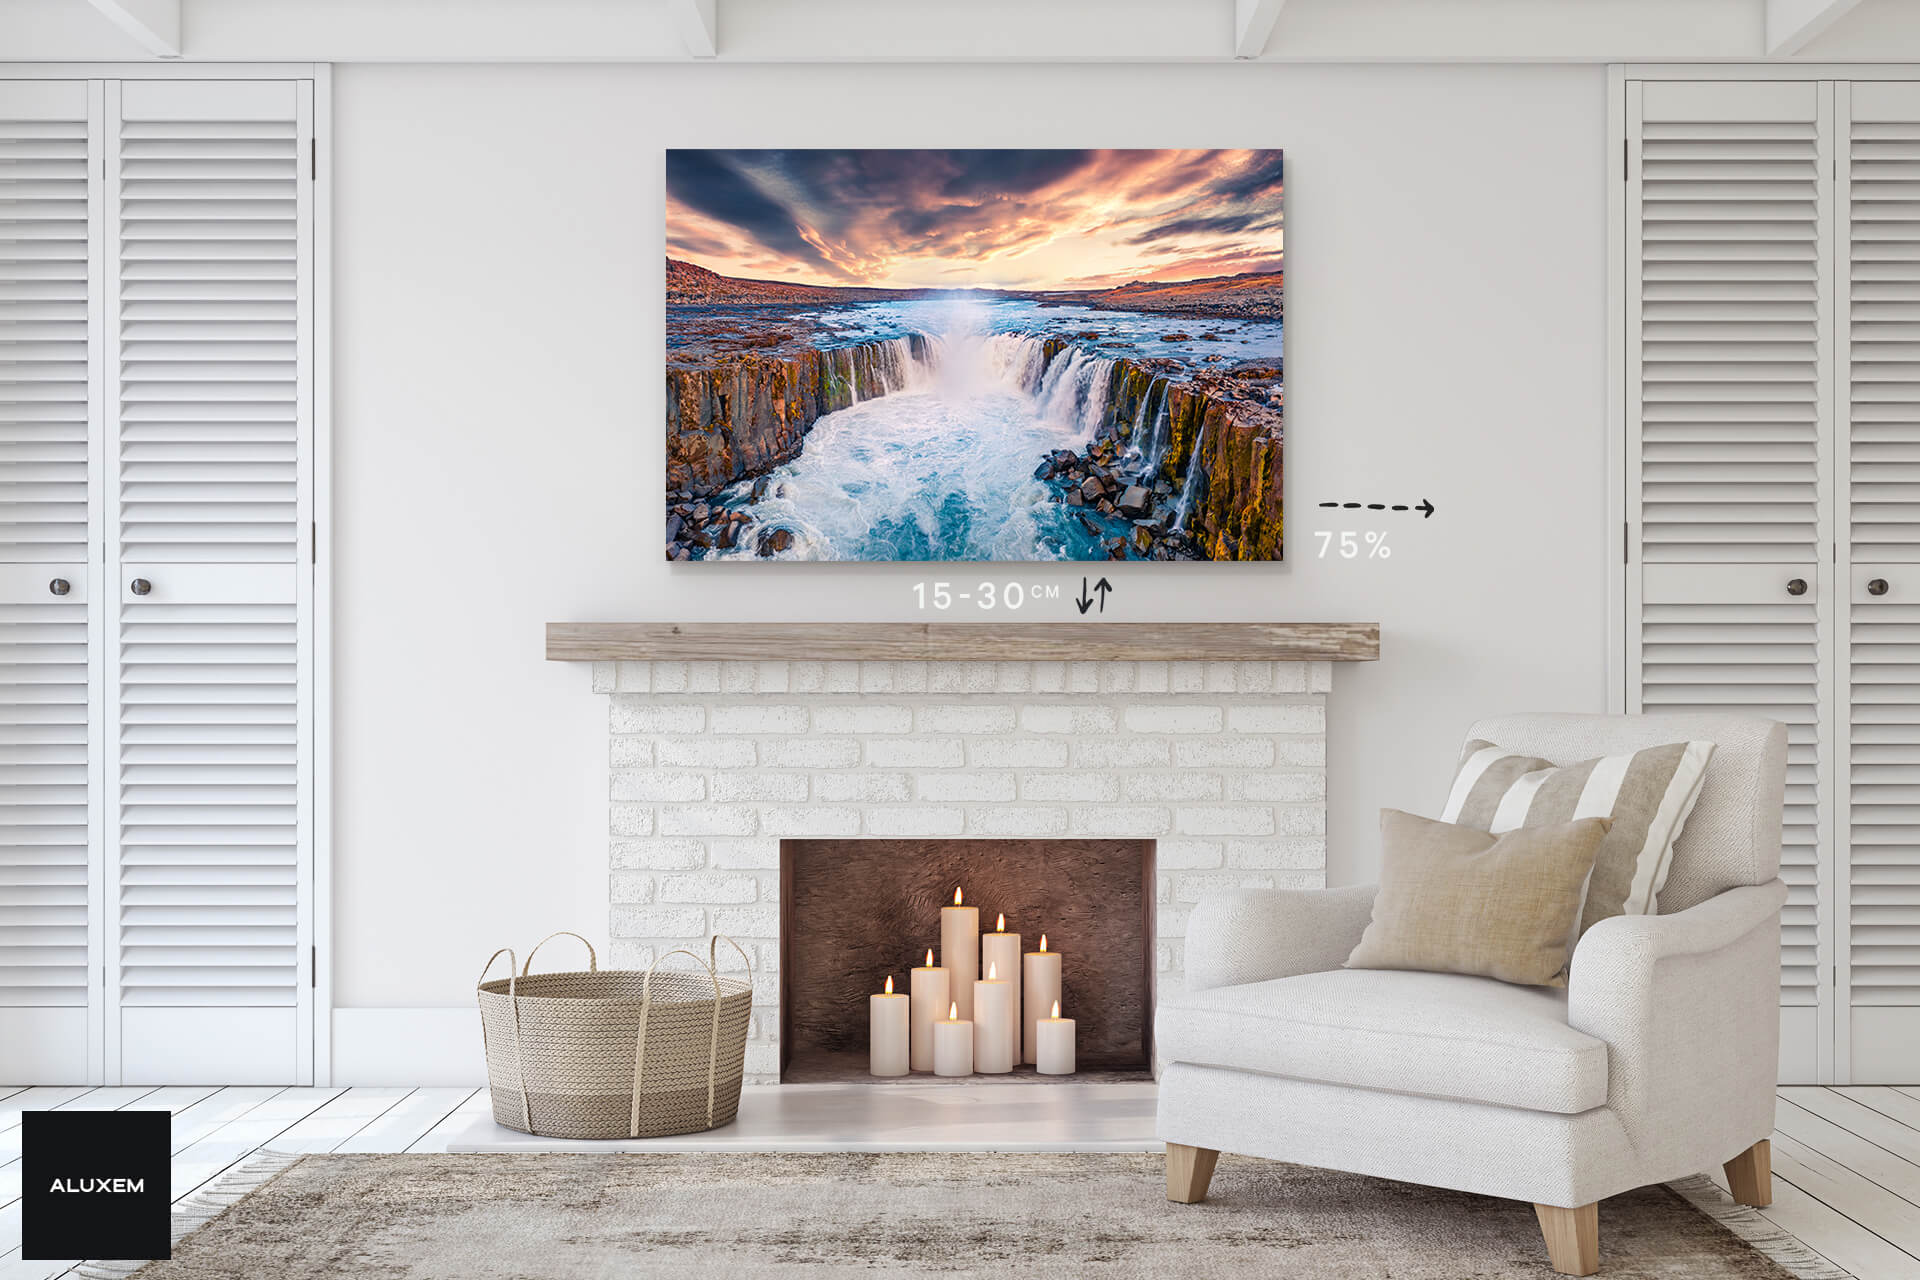 How to choose the right wall art size?